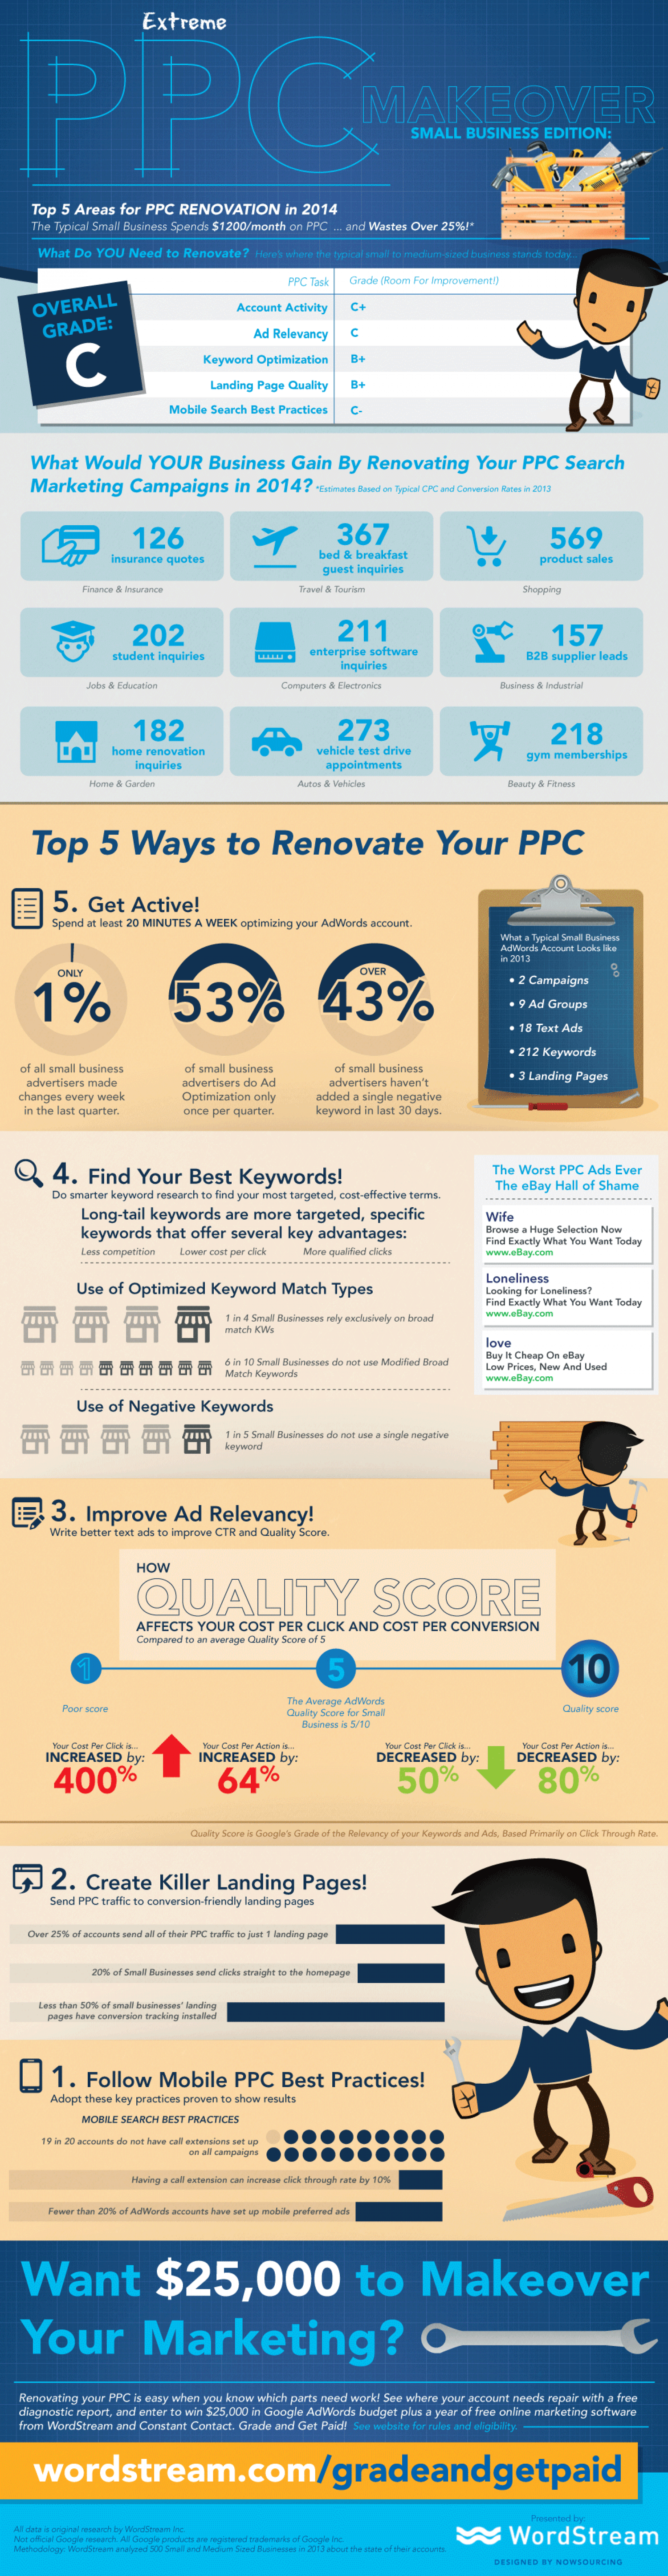 Extreme PPC Makeover Infographic